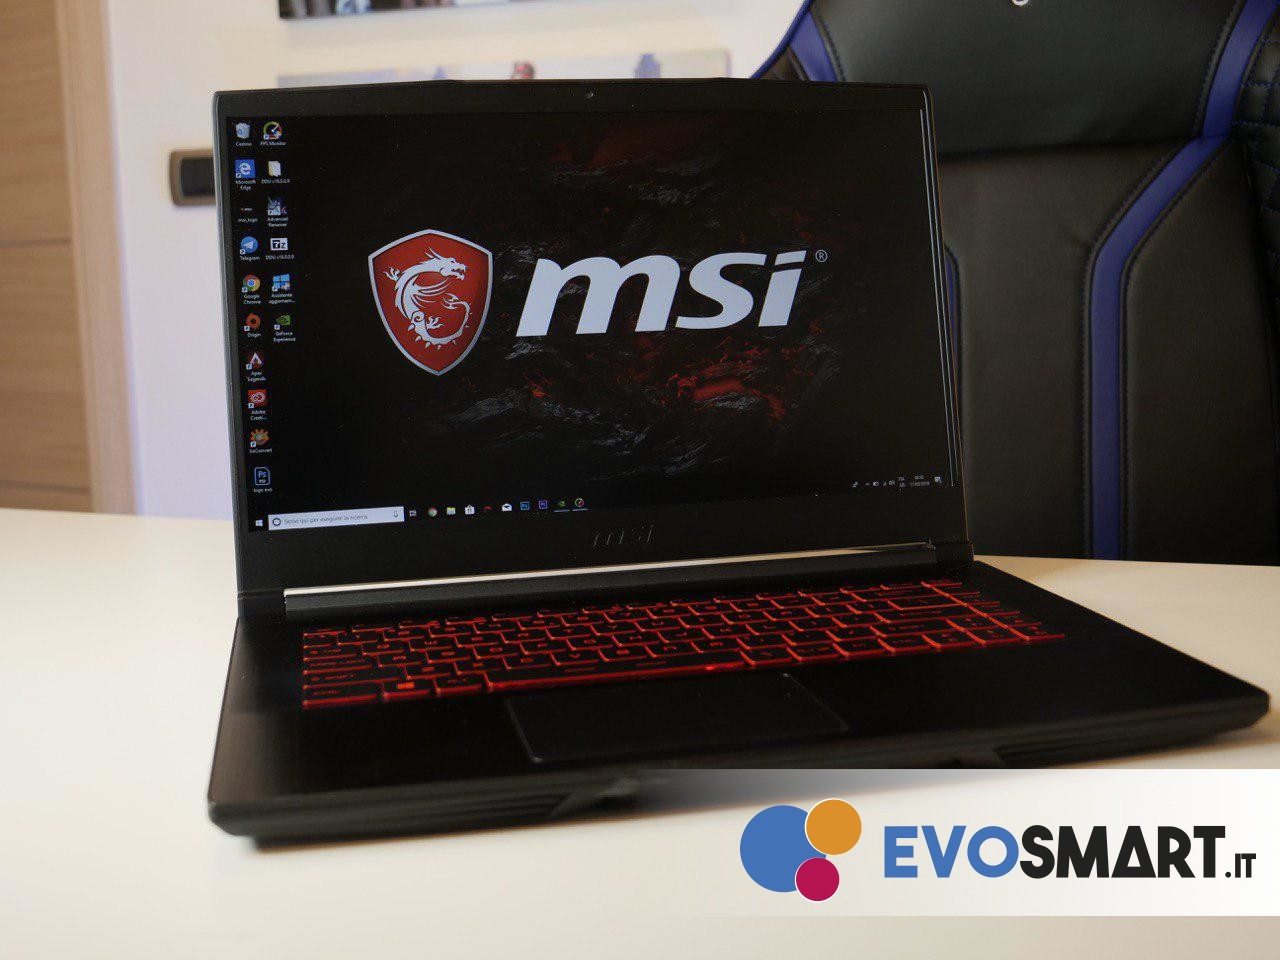 msi gaming laptop 10